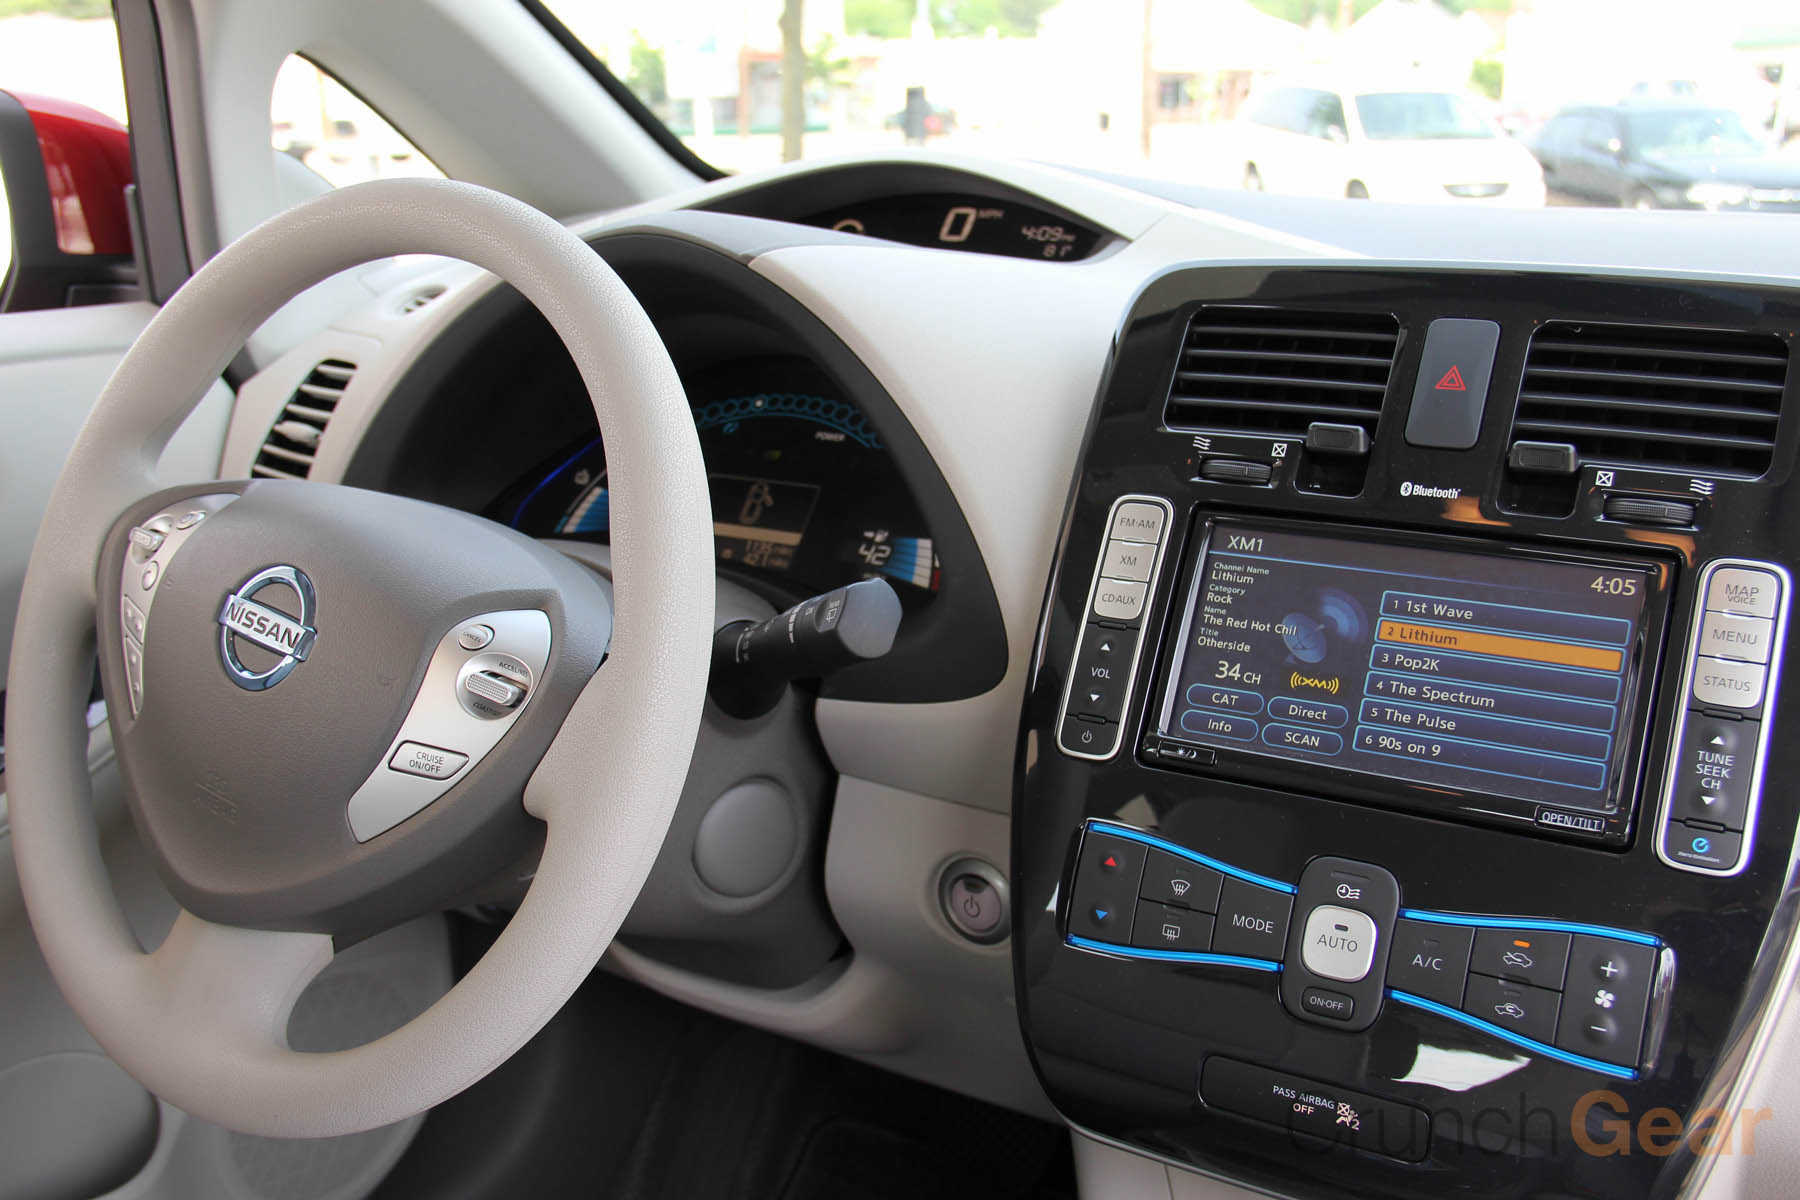 The Nissan Leaf Review A Fun And Practical Electric Car For Control Ac March Large Touchscreen Features Navigation Media Controls Plenty Of Information Regarding Electrical Systems Key Info Screen Pictured